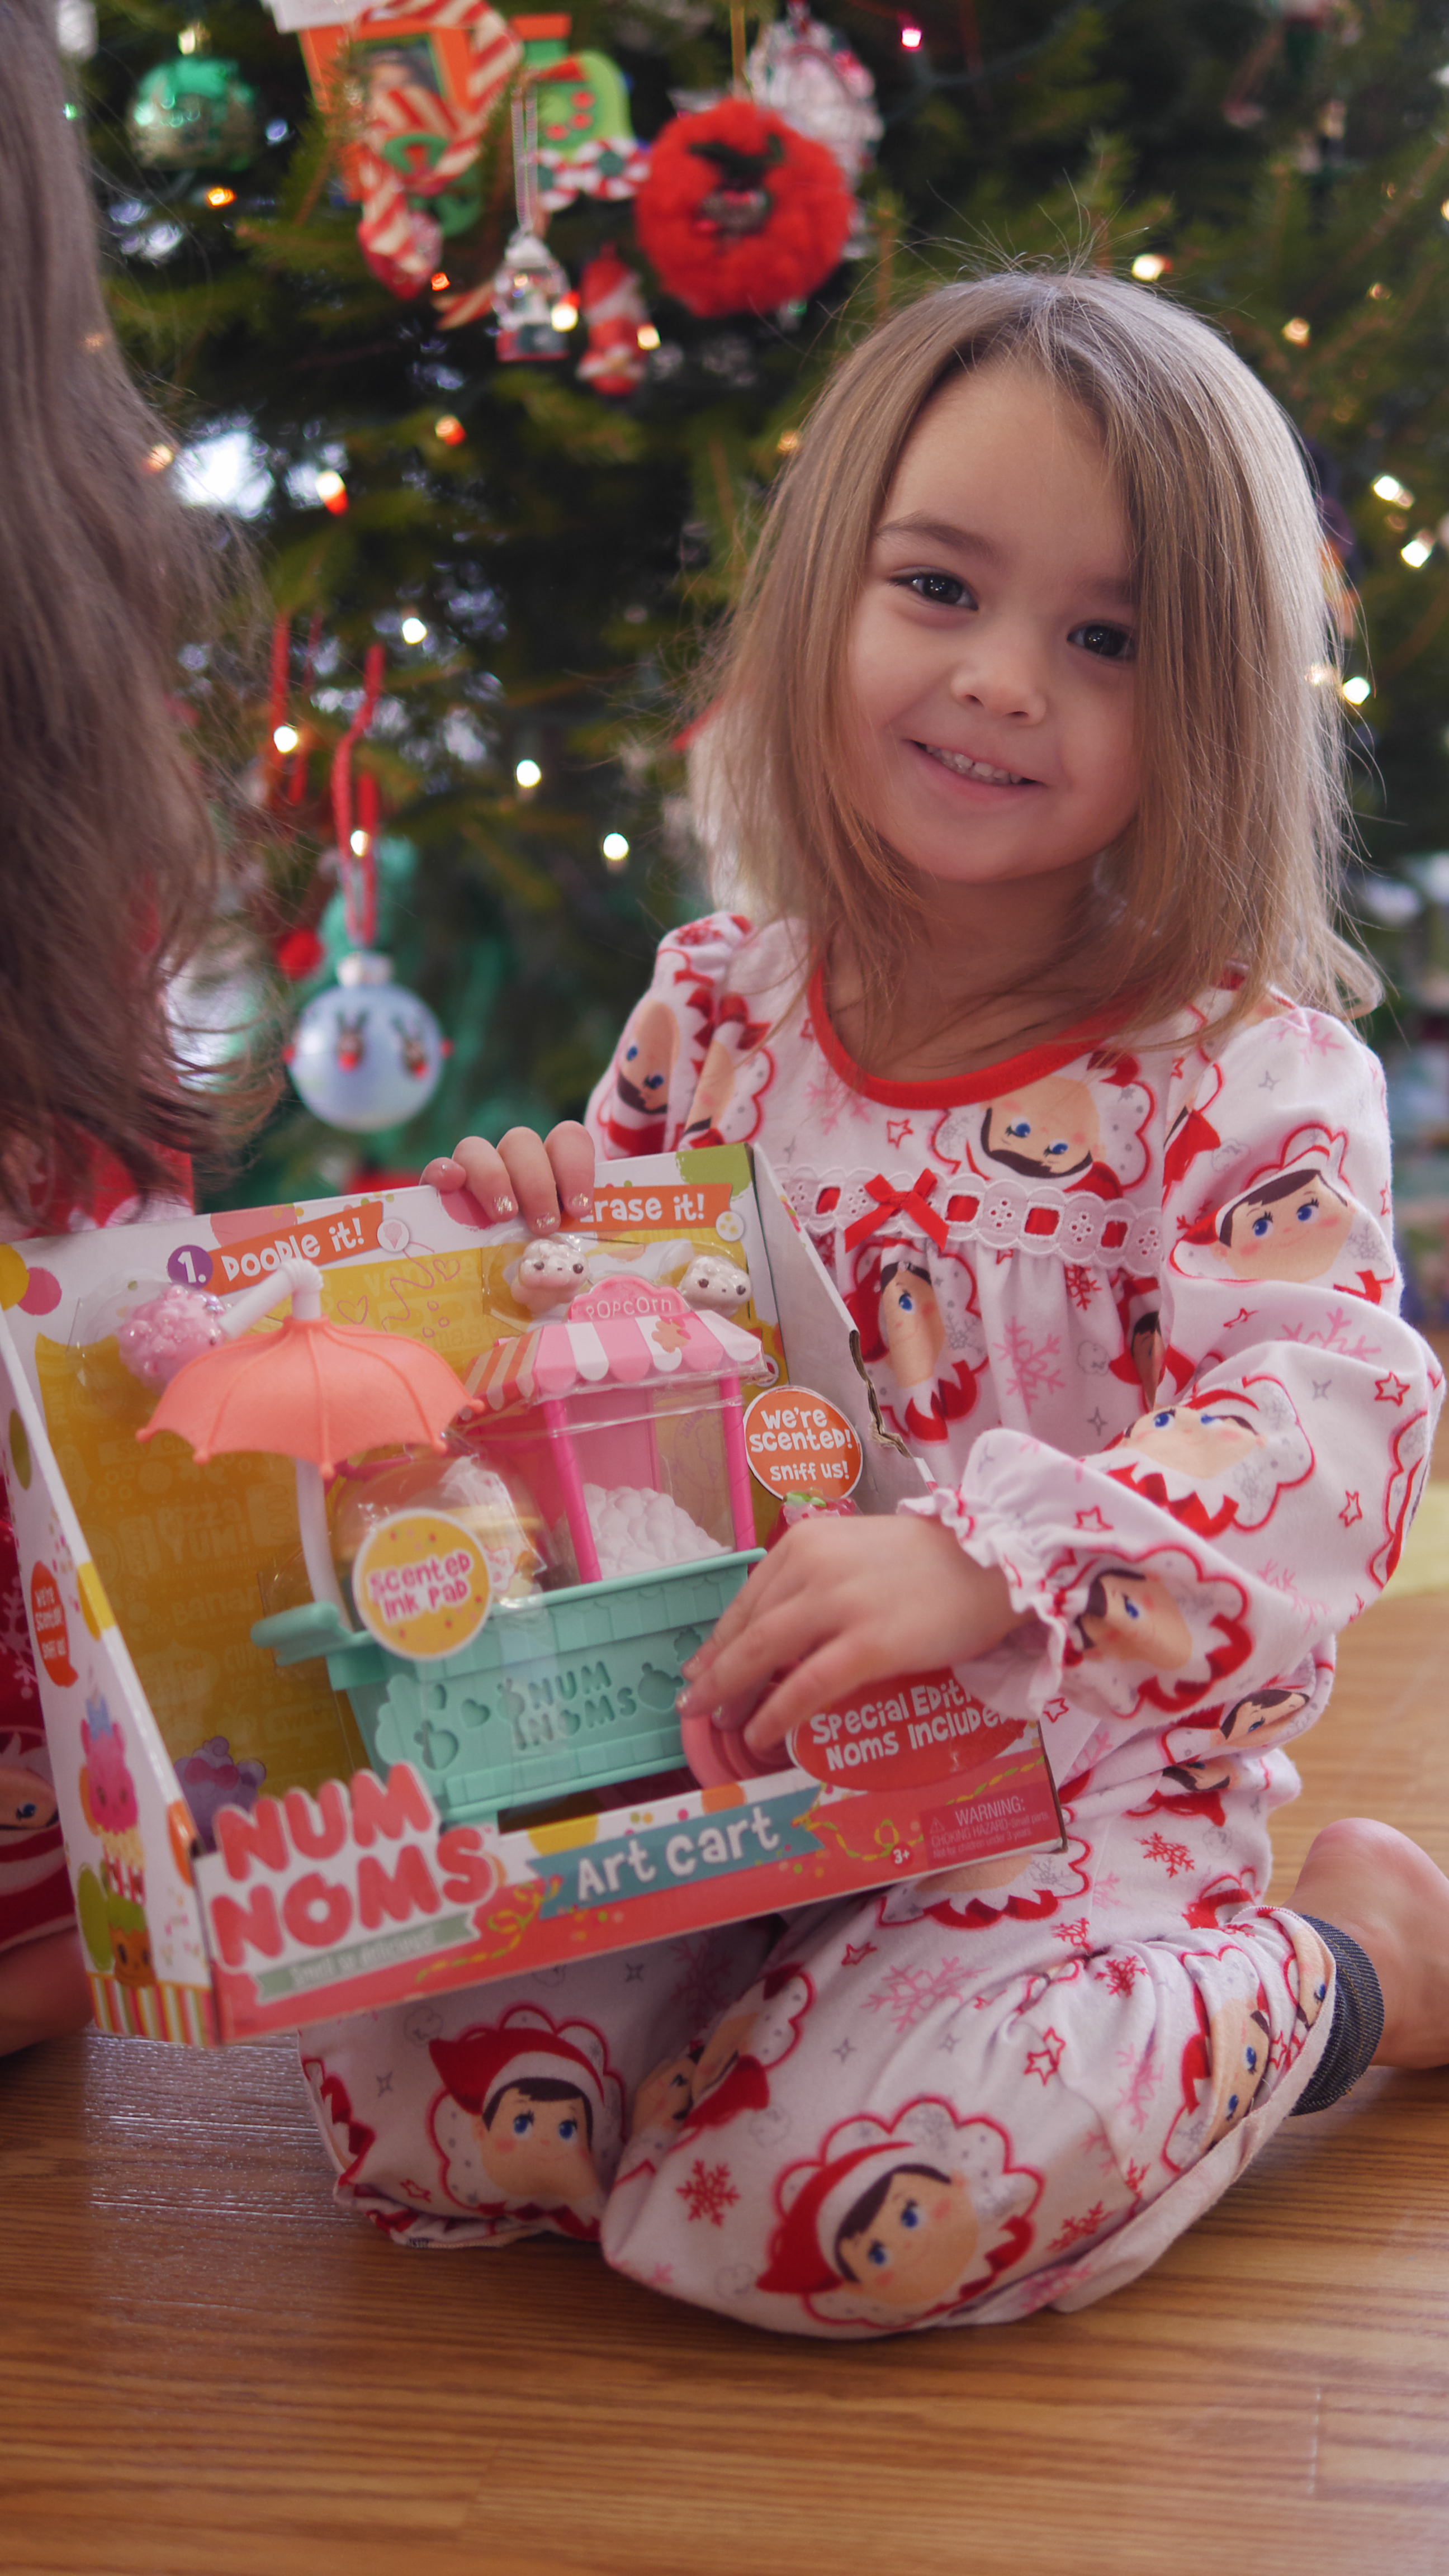 Although there are many kits for making lip gloss, stationery, and popsicles, Num Noms make these activities more exciting. by Theresa's Reviews